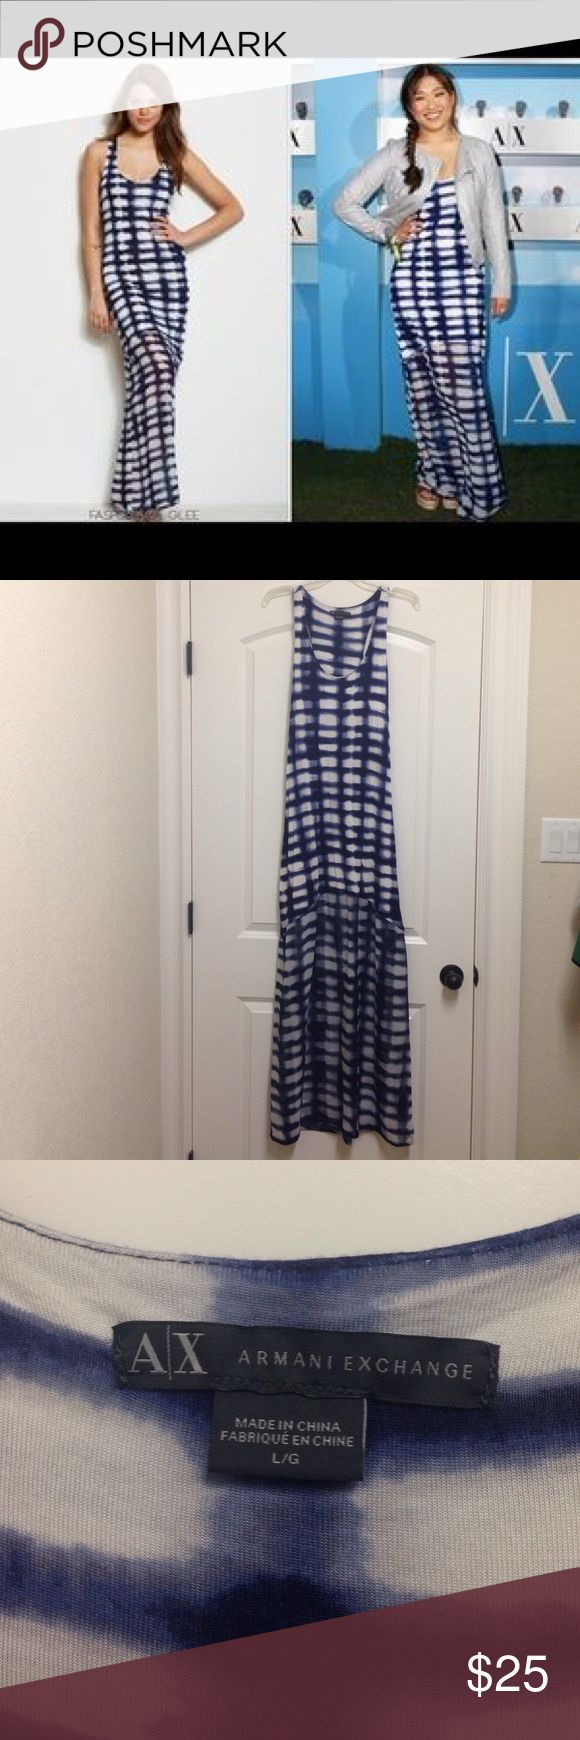 """Armani Exchange tie dye maxi dress - like new Beautiful full length maxi dress with built in shelf bra and sheer bottom (just above the knees). Super comfy resort style dress / can dress up or down / worn once / approx 61"""" long from shoulder to hem / final price A/X Armani Exchange Dresses Maxi"""